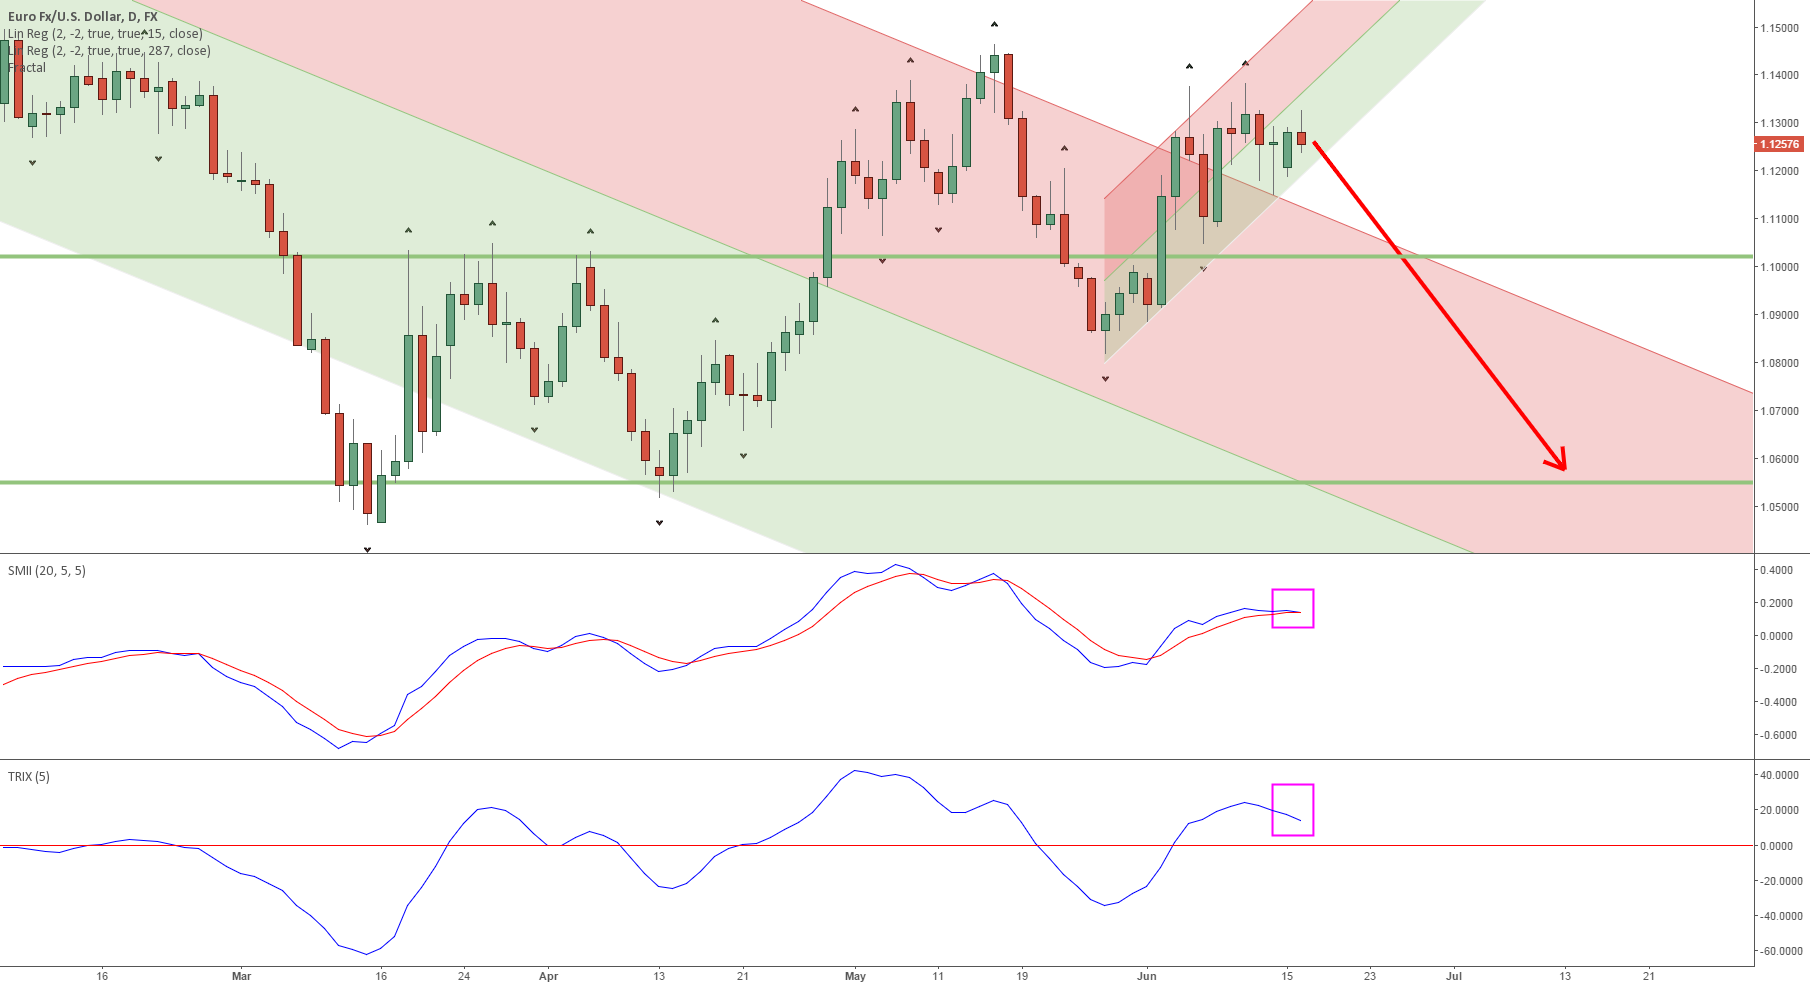 Enough room for a EURUSD downtrend until July 2015